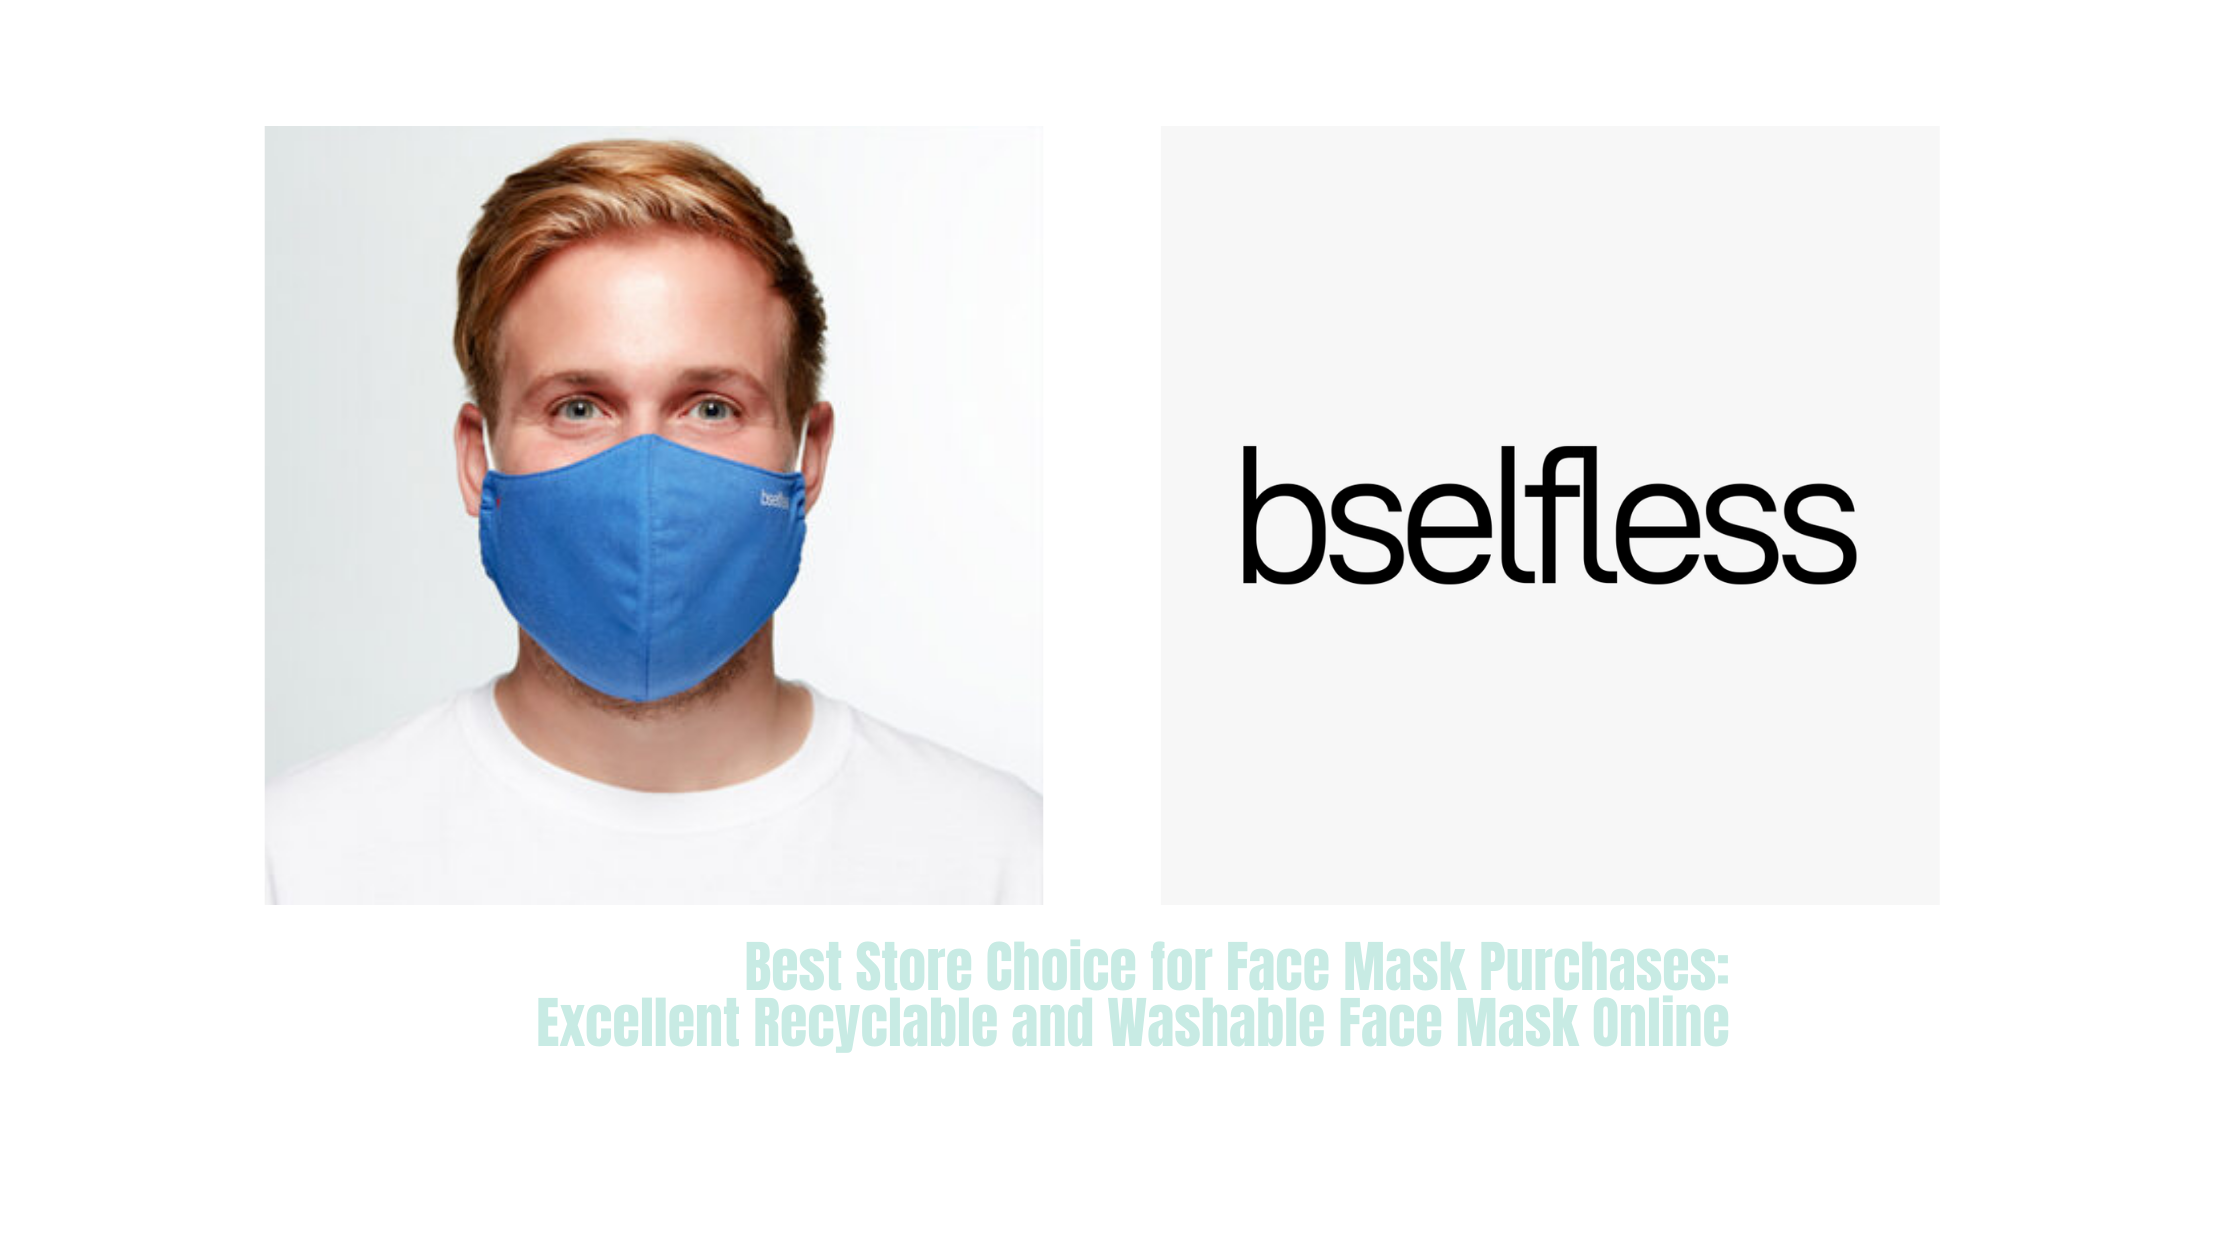 Best Store Choice for Face Mask Purchases: Excellent Recyclable and Washable Face Mask Online